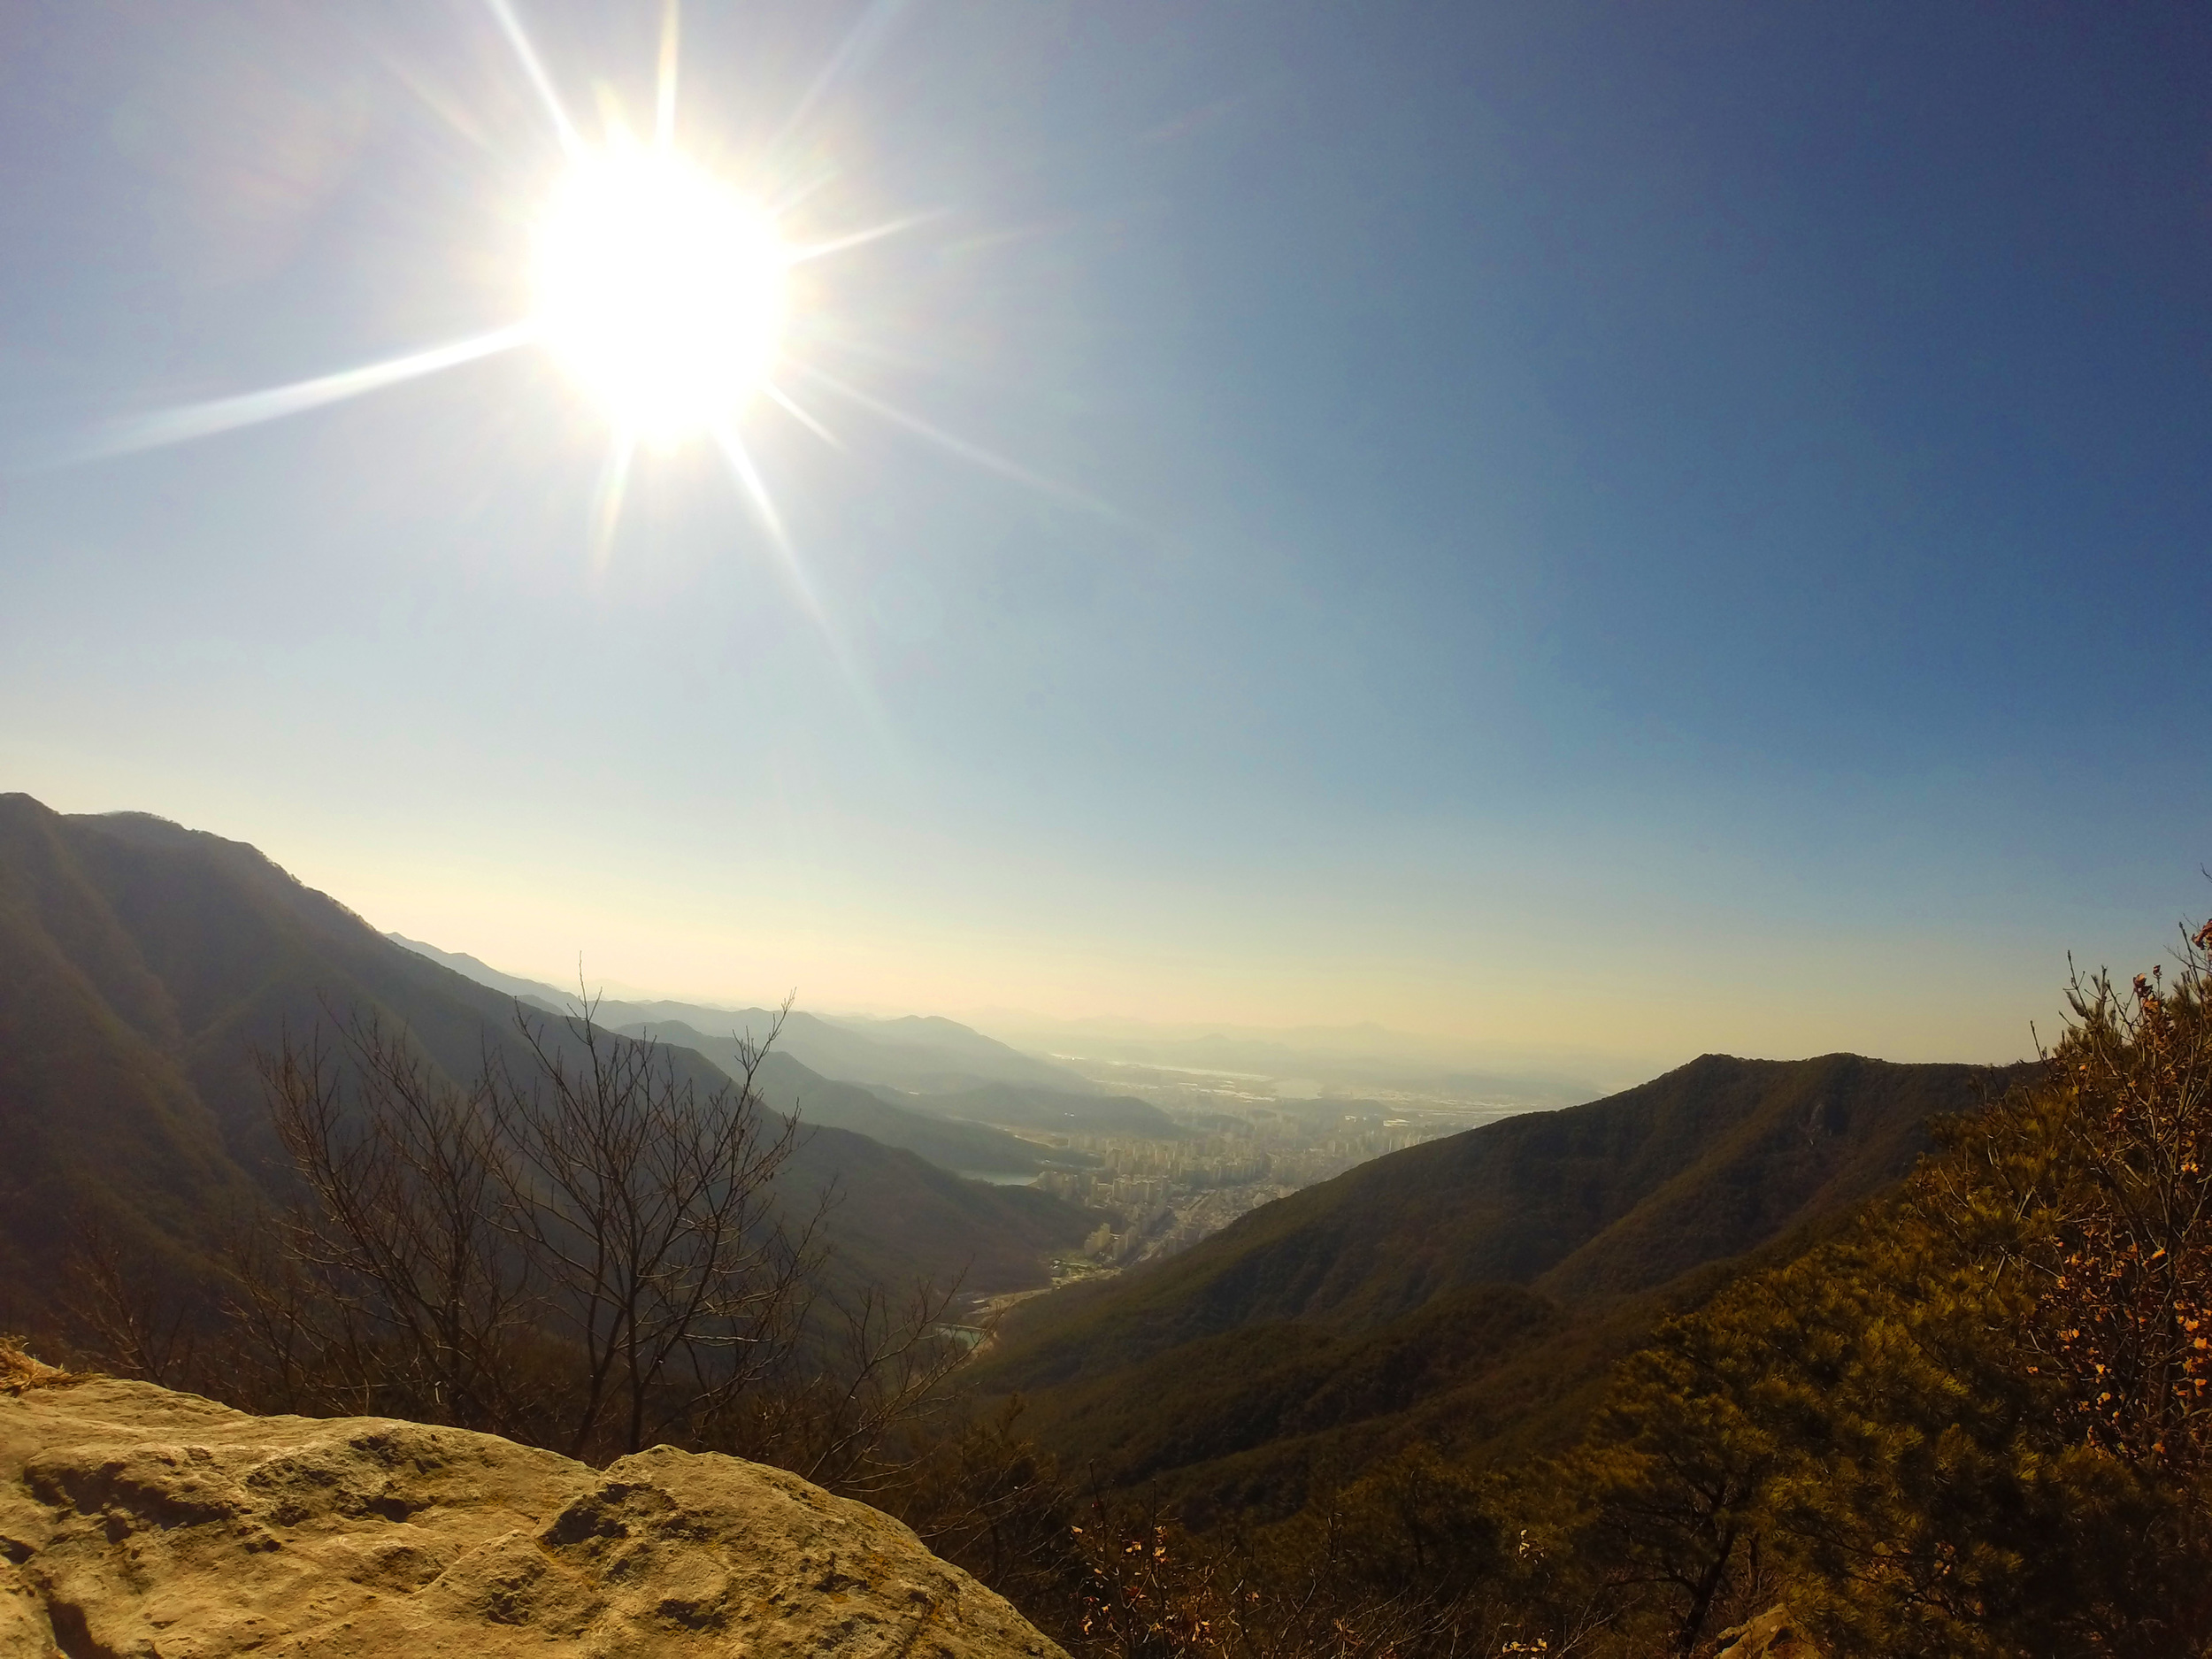 View from atop Mount Apsan—not too far from where I live in Daegu